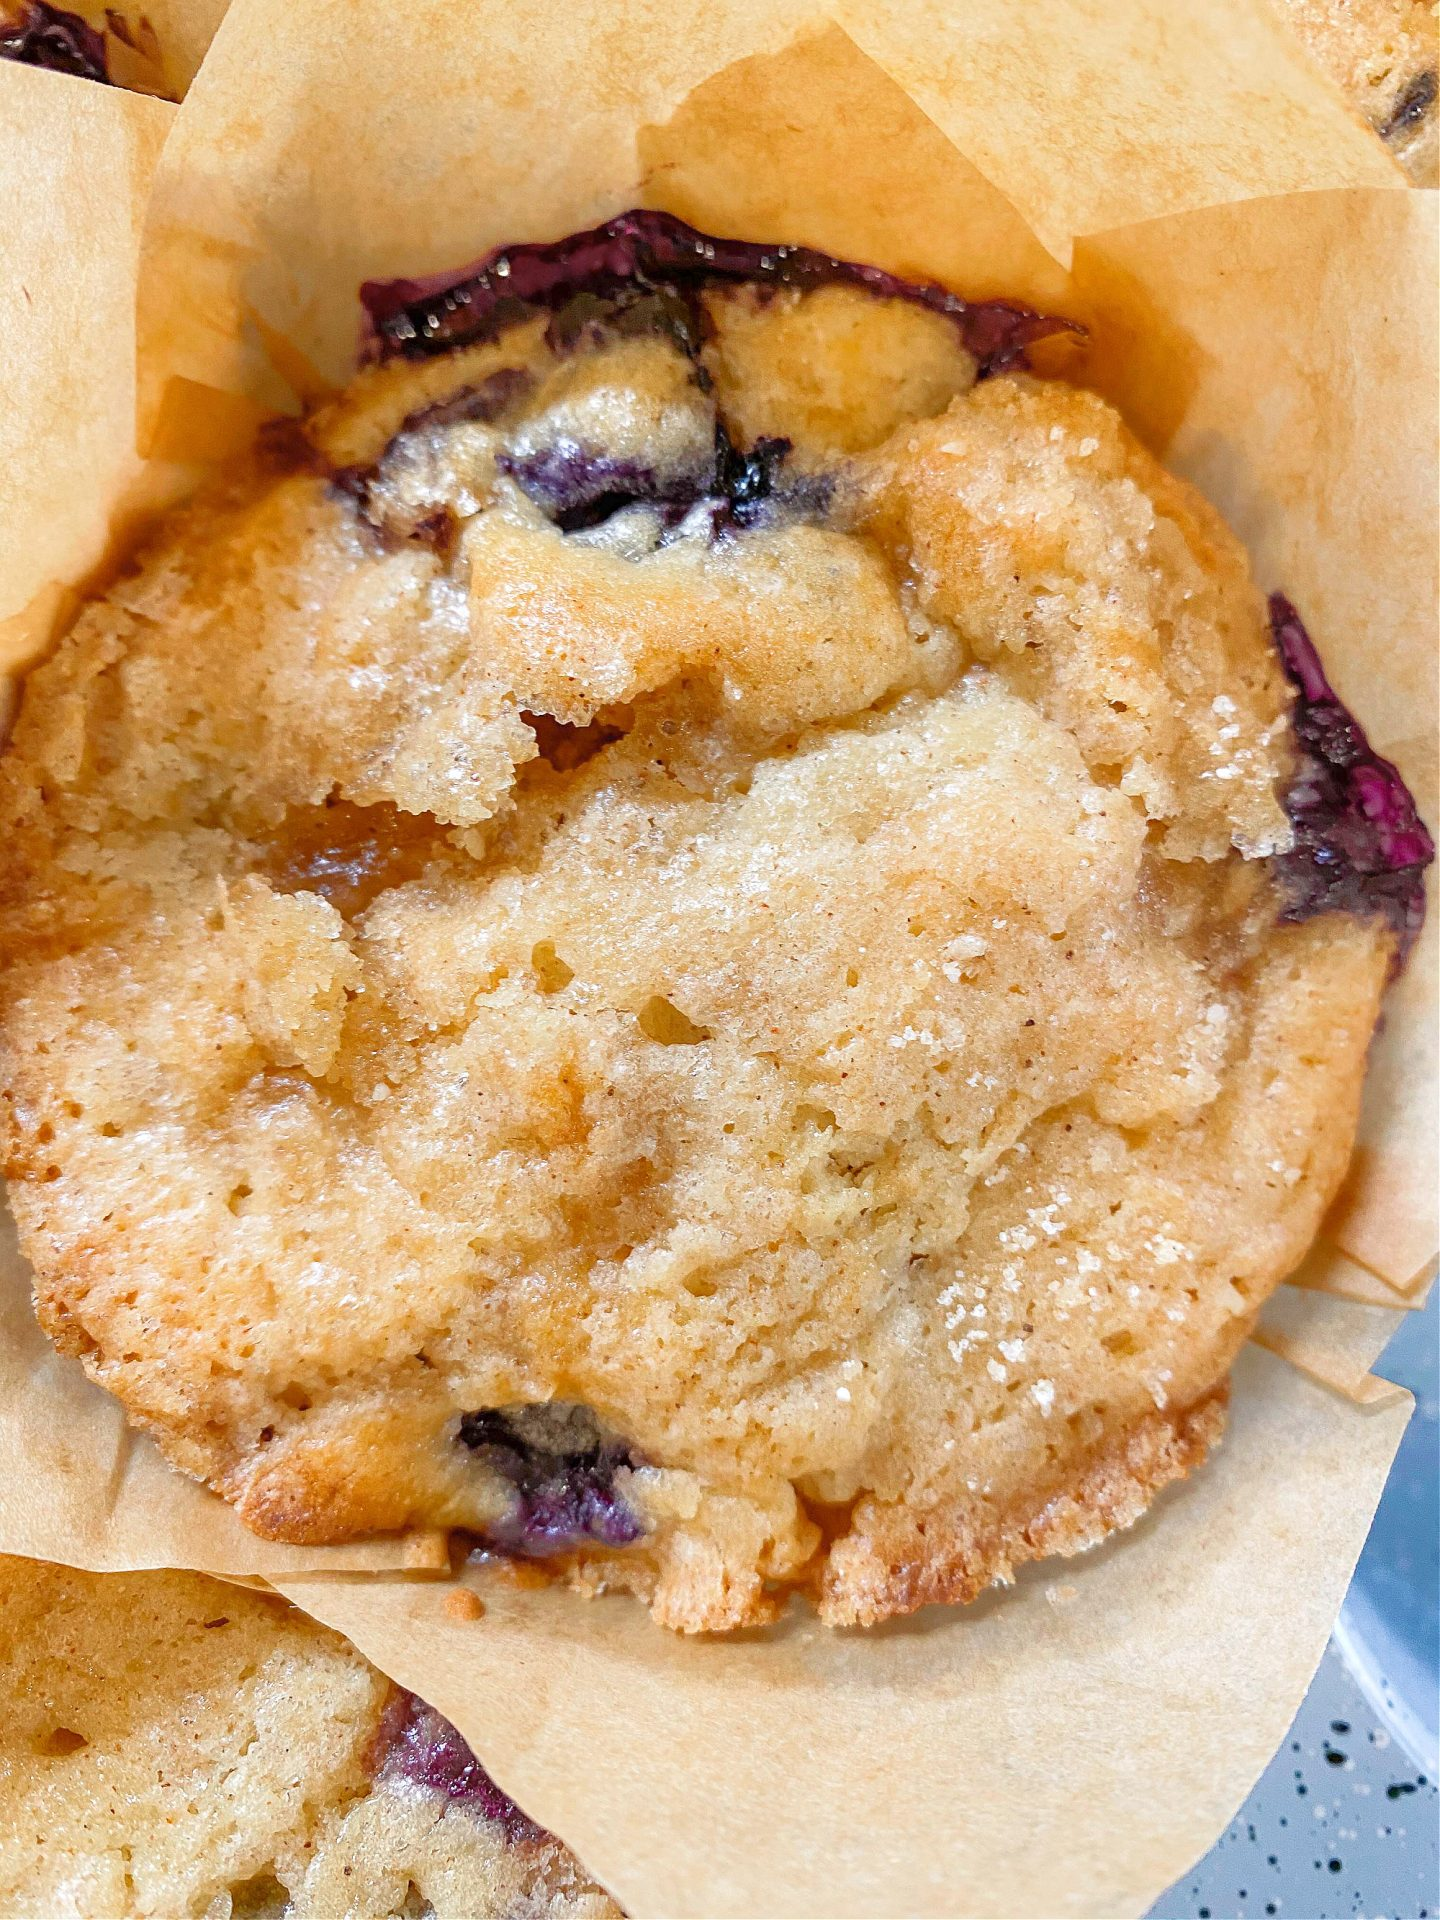 THE BEST BLUEBERRY MUFFIN RECIPE